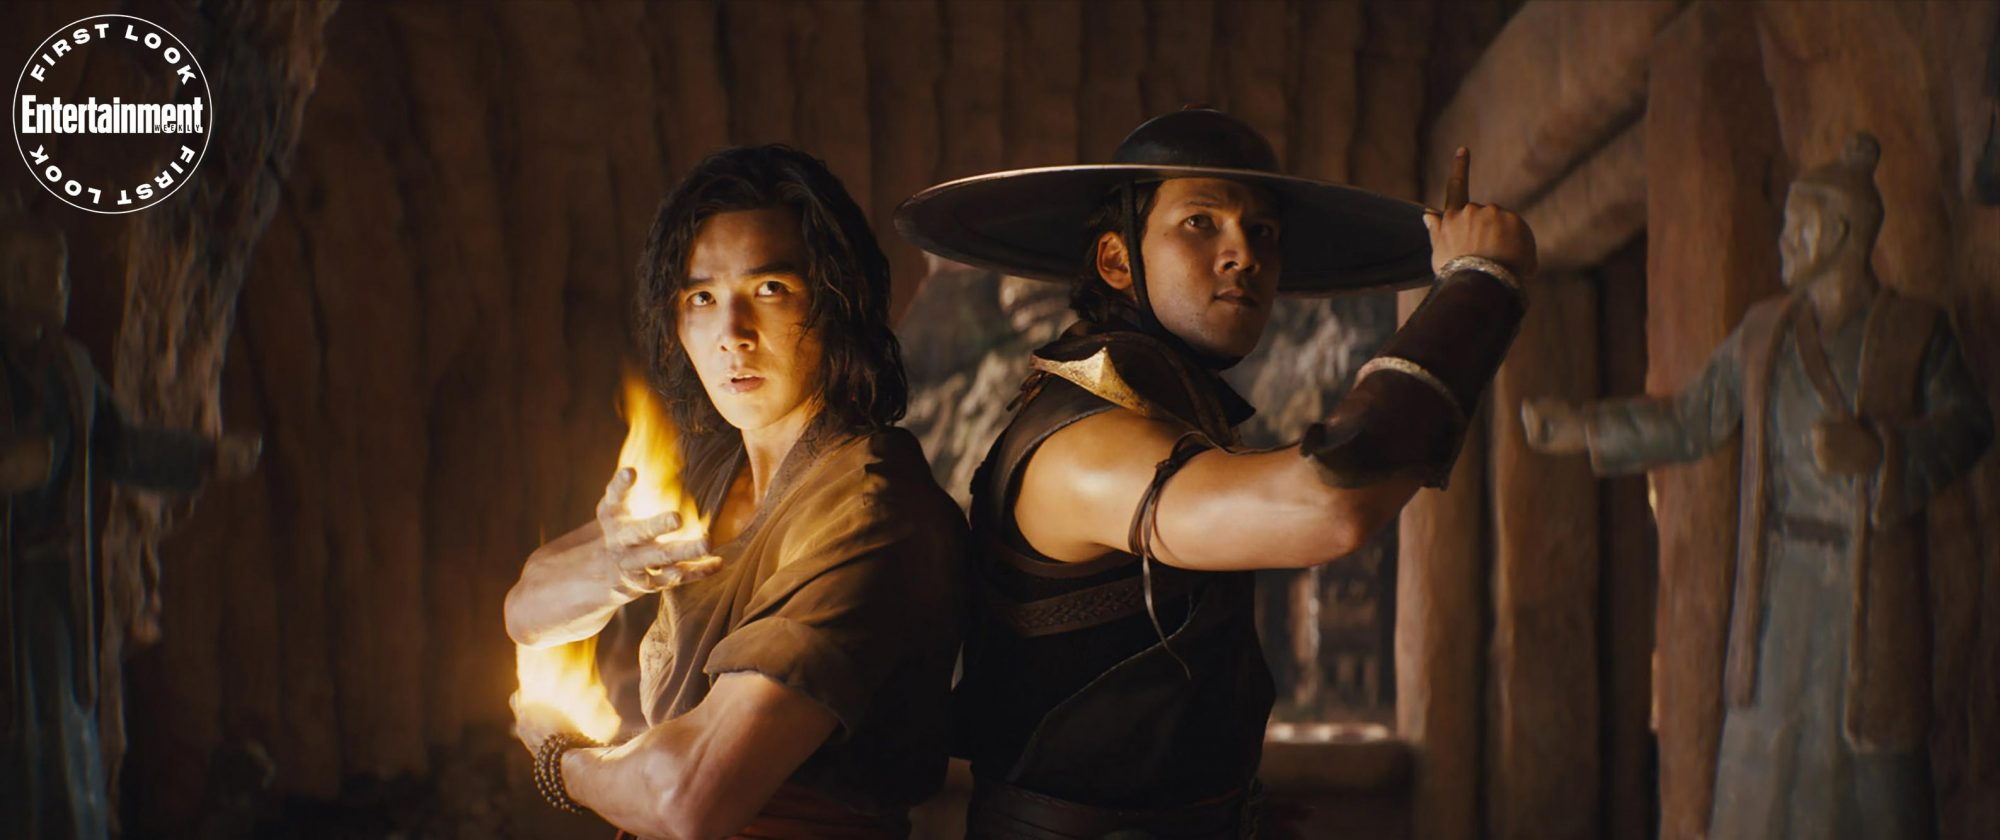 Liu Kang and Kung Lao, played by Ludi Lin and Max Huang respectively